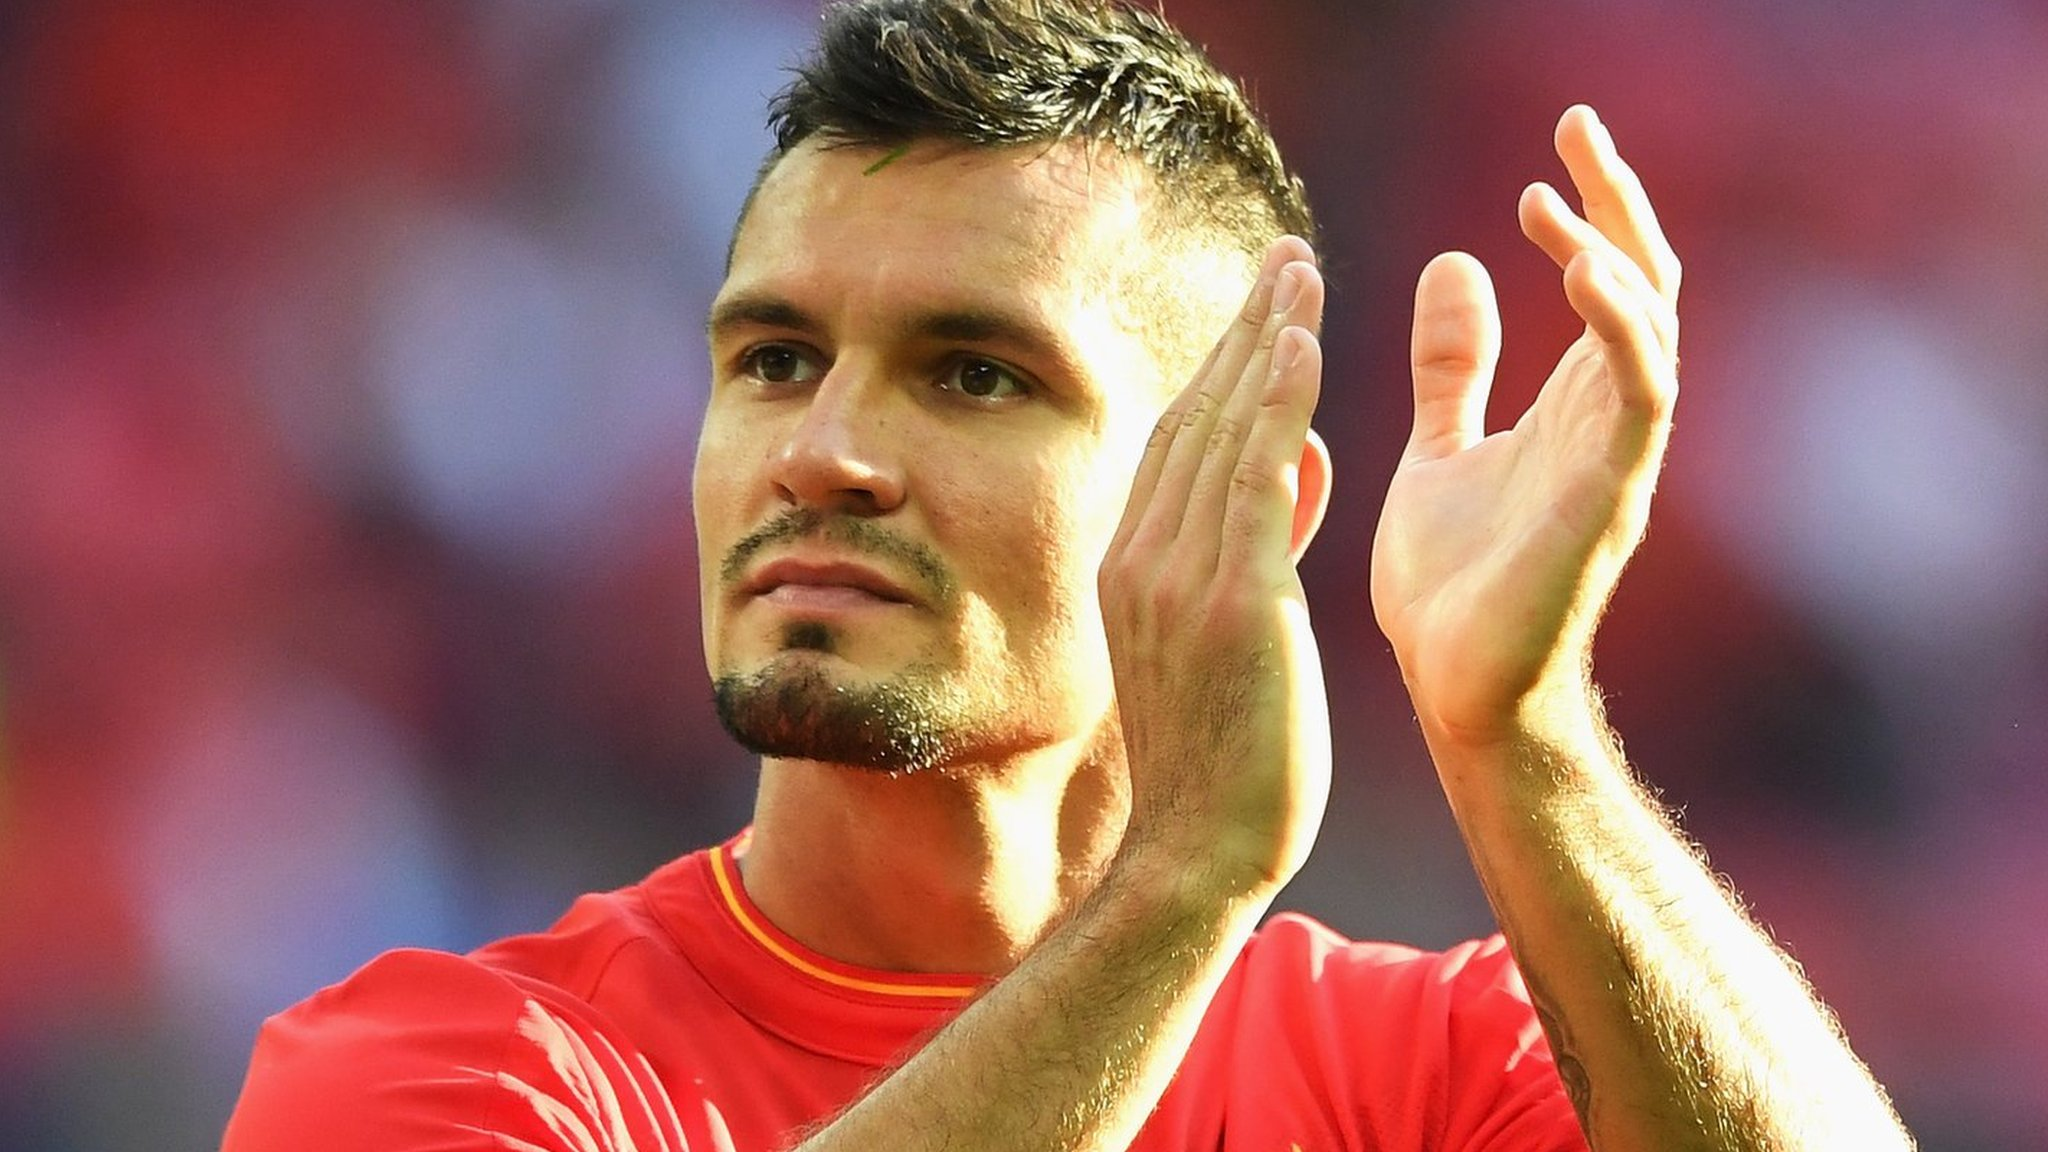 Lovren signs new deal at Liverpool until 2021